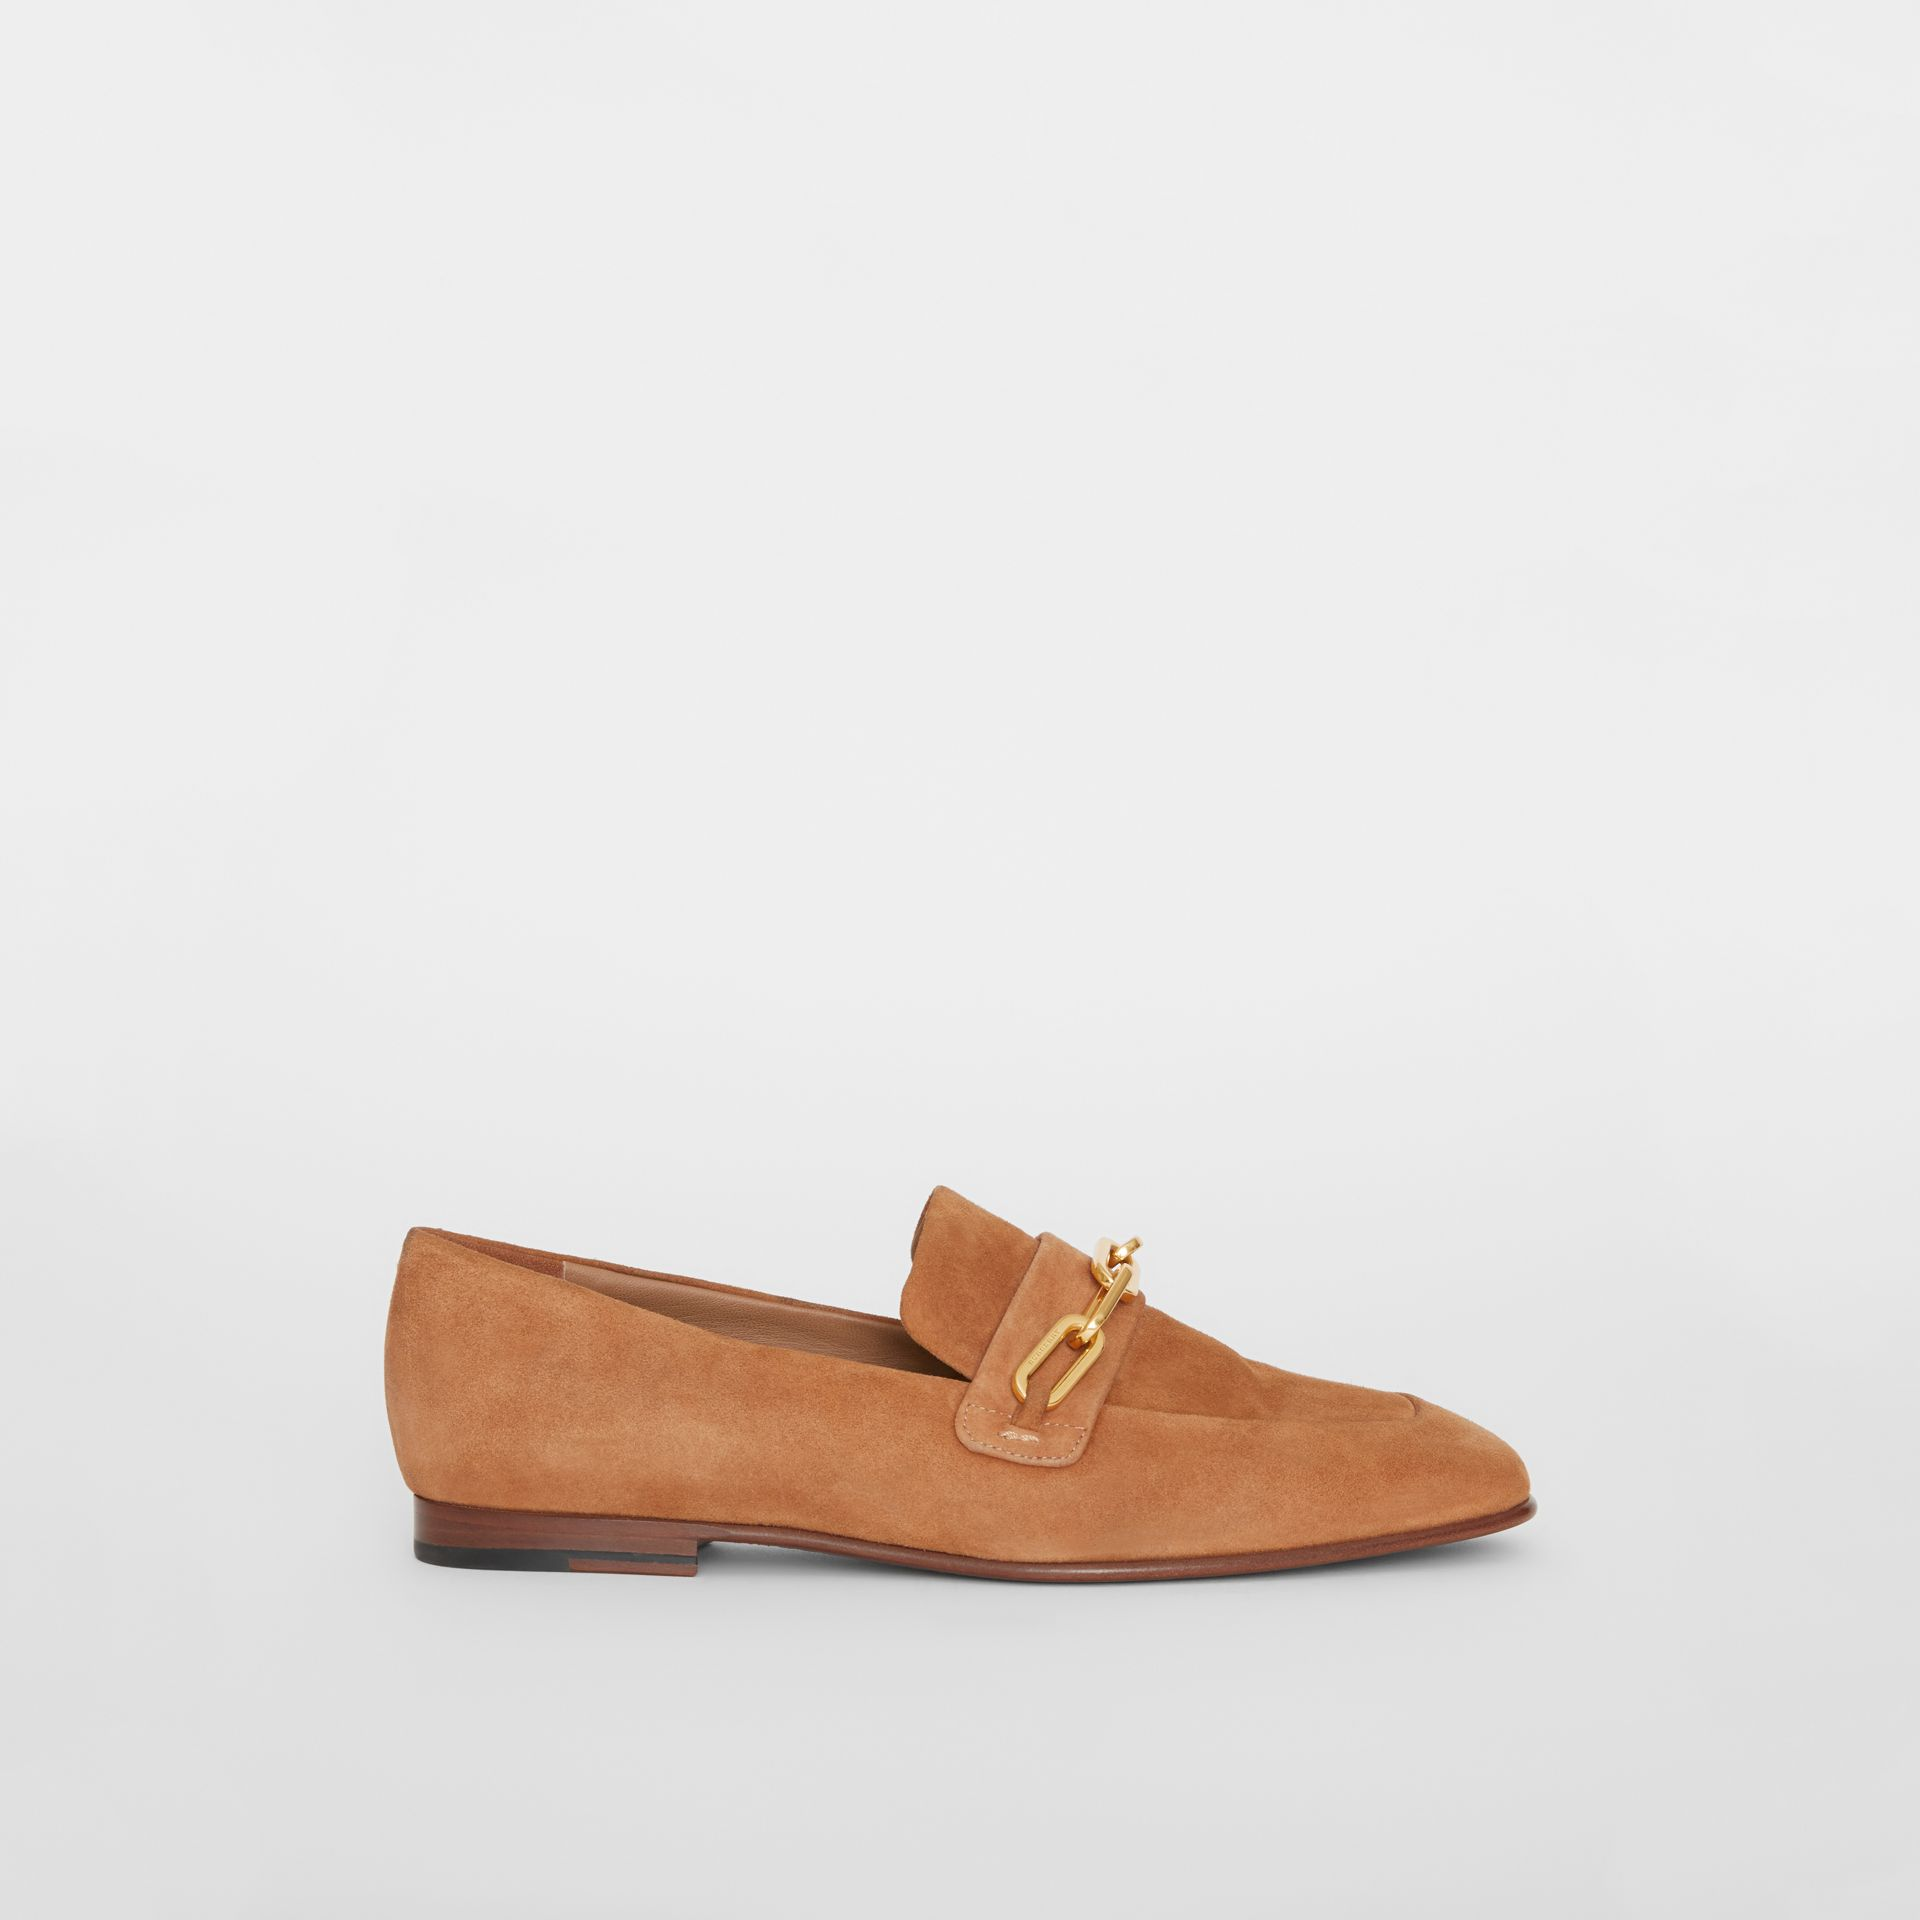 Link Detail Suede Loafers in Mid Camel - Women | Burberry United Kingdom - gallery image 5